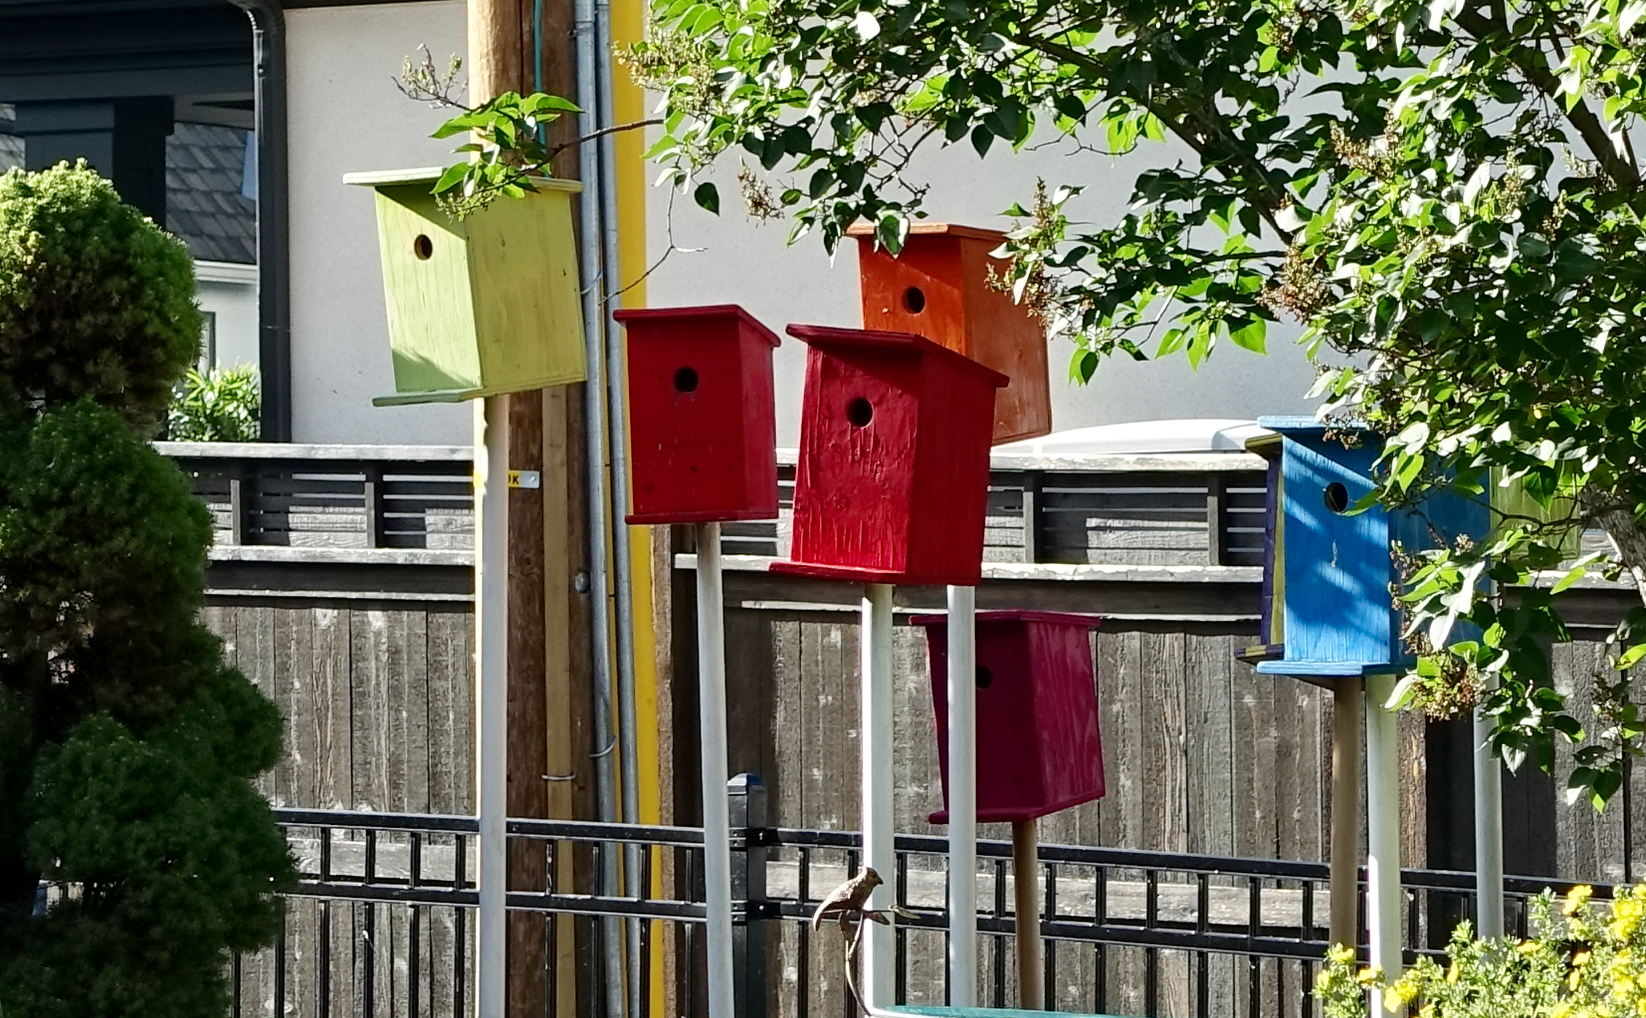 Loved these colourful front yard birdhouses.